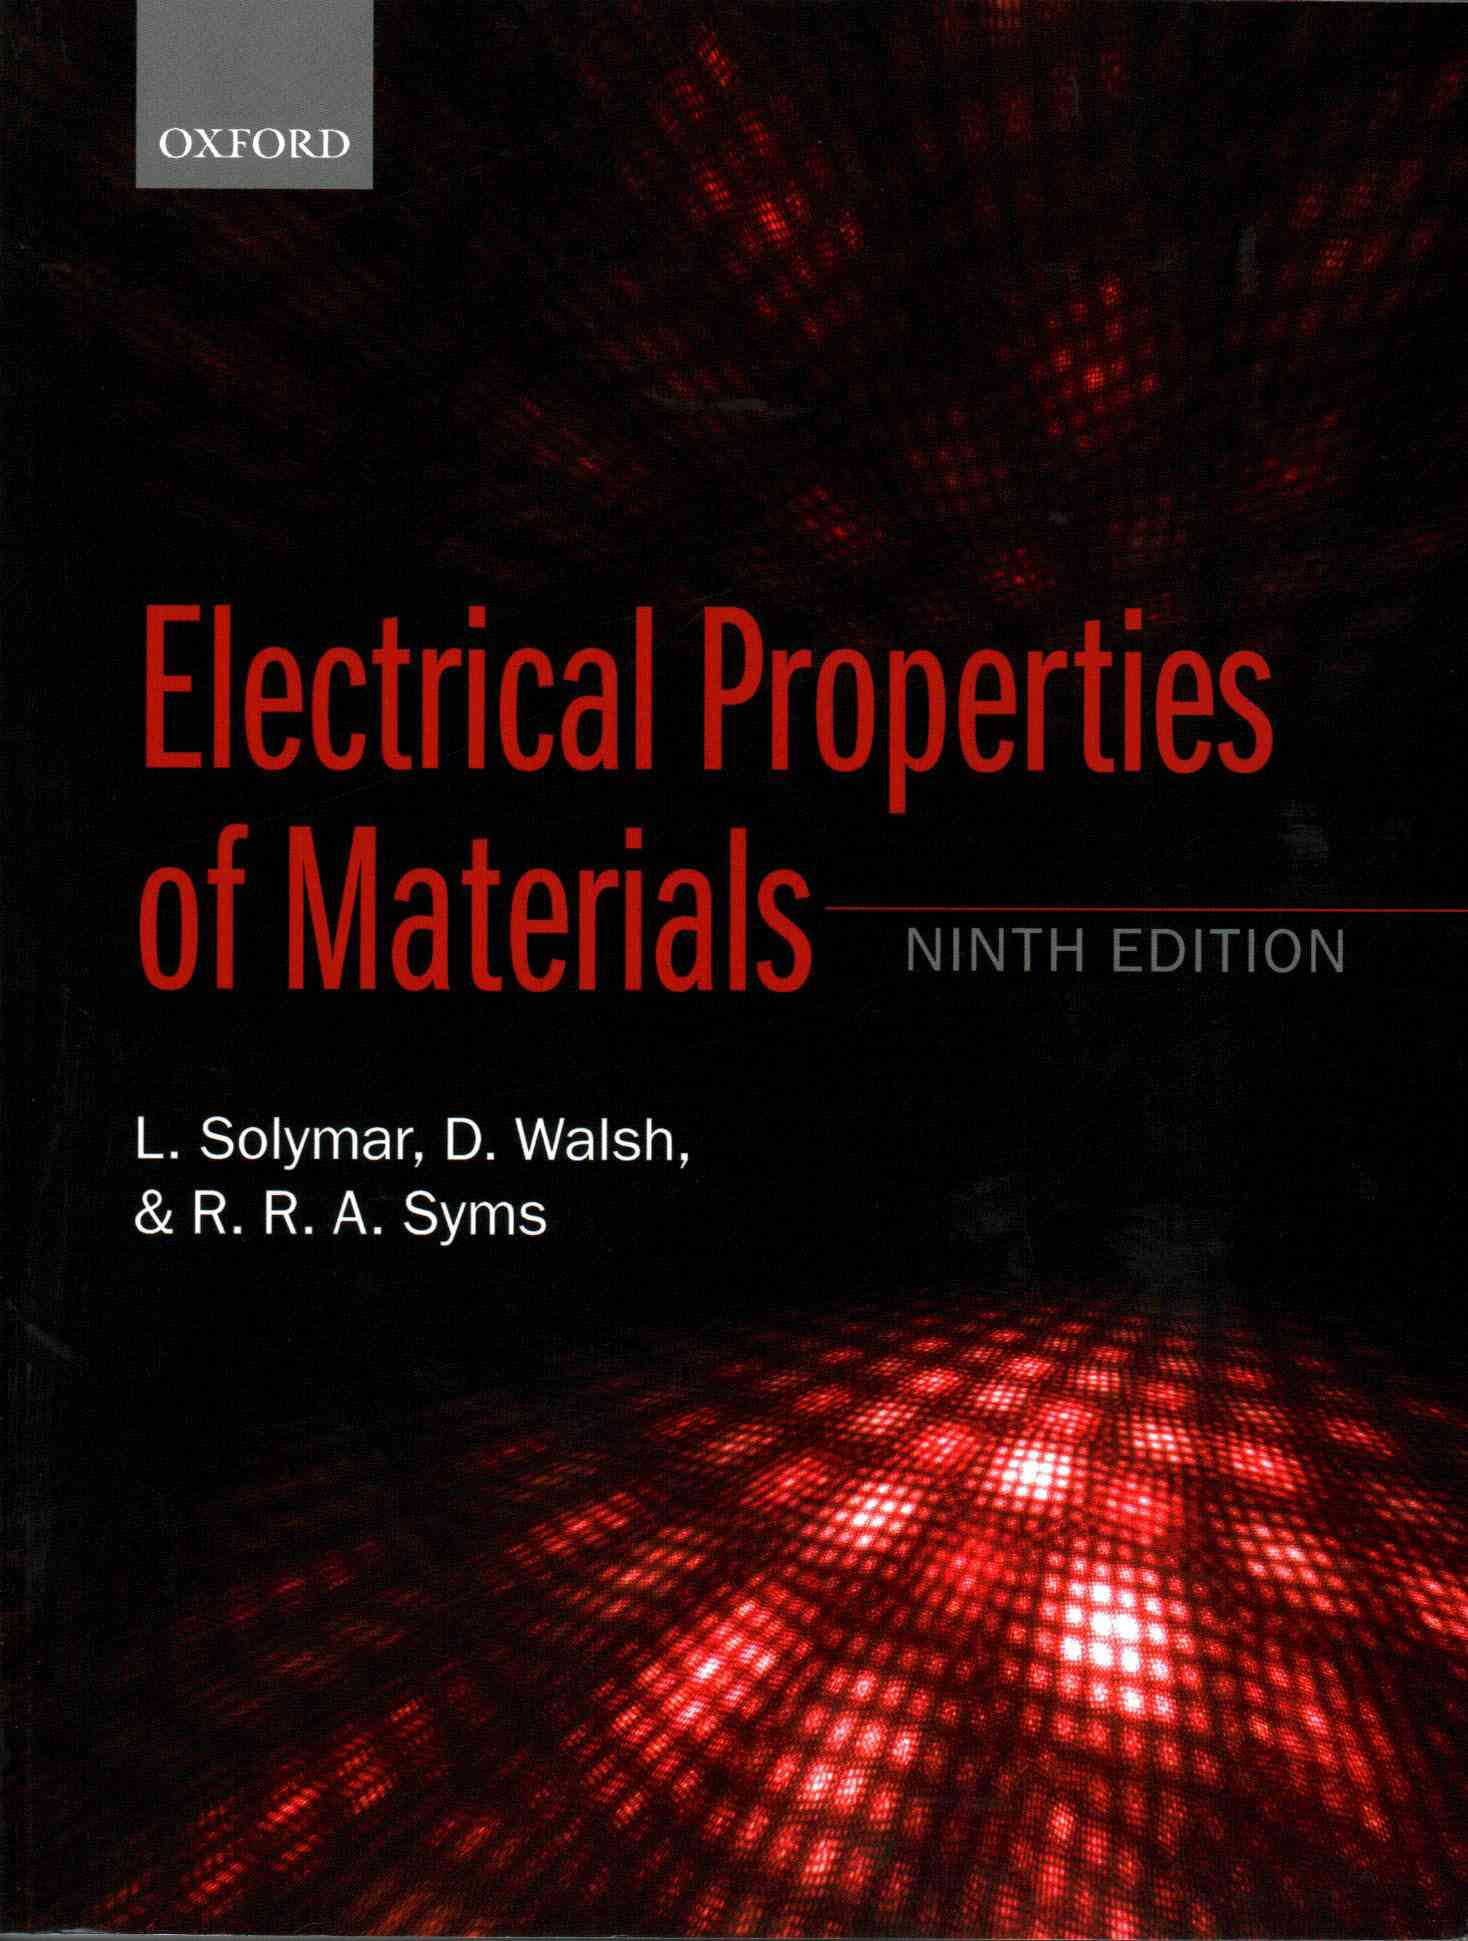 Electrical Properties of Materials By Solymar, Laszlo/ Walsh, Donald/ Syms, Richard R. A.